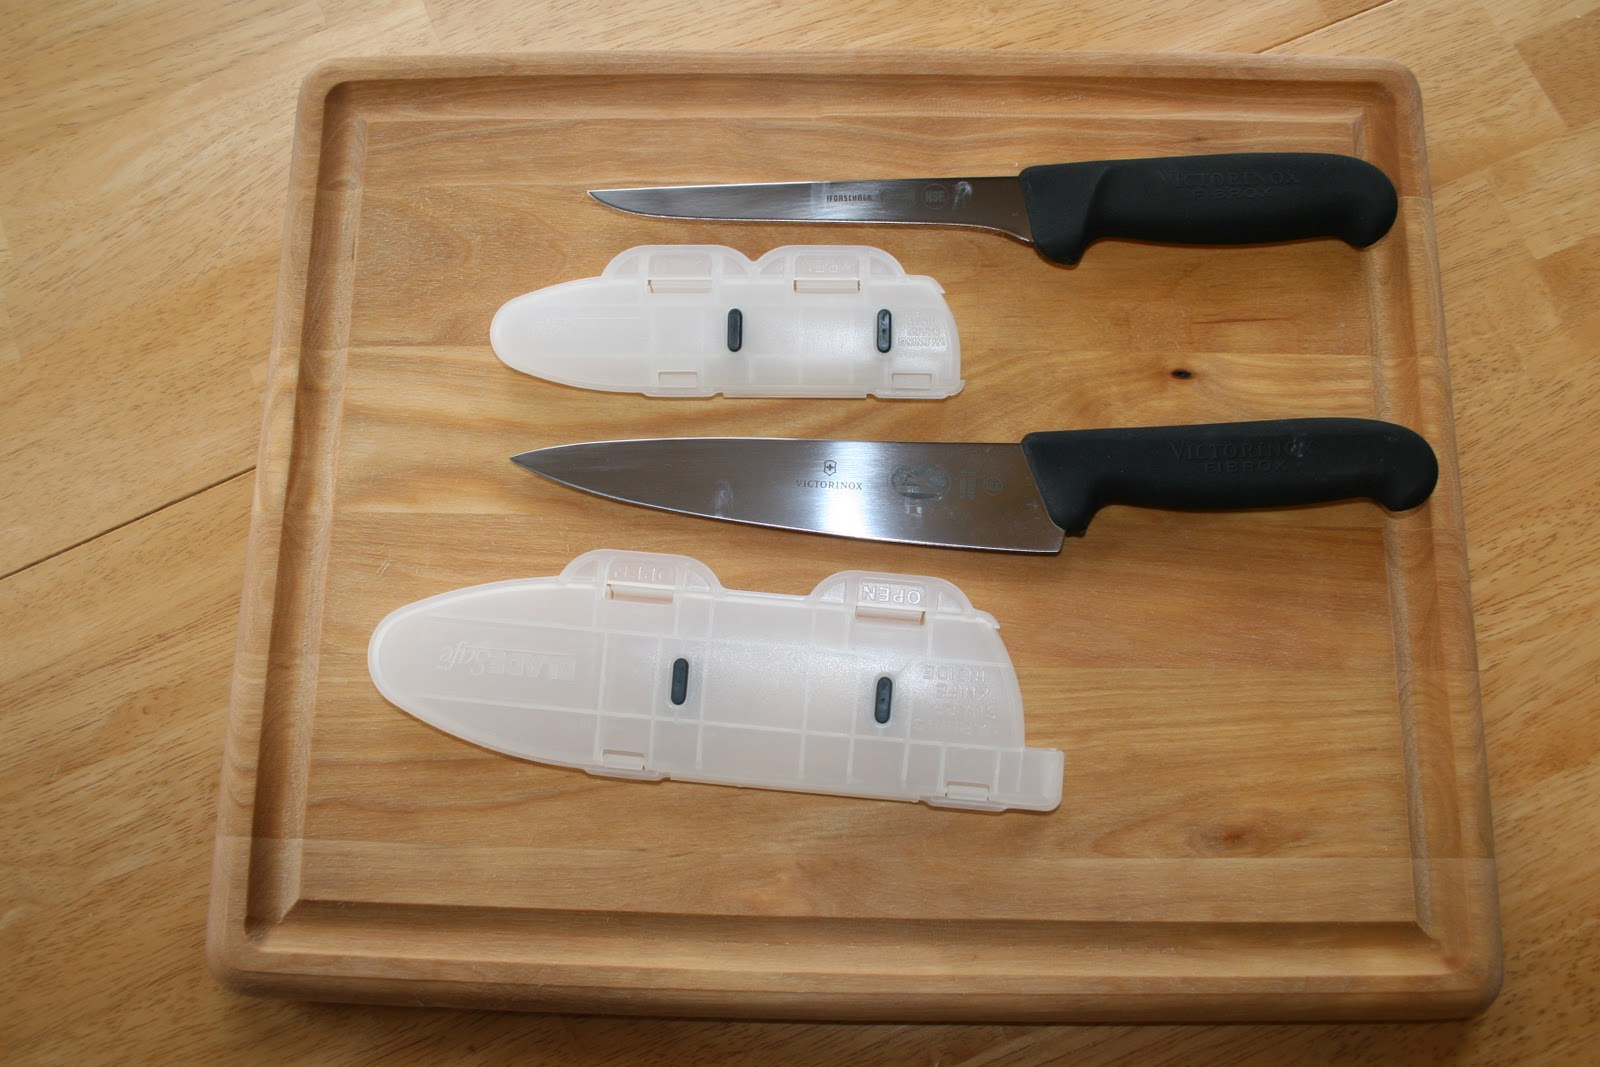 The hunger extinguisher new knives and cutting board